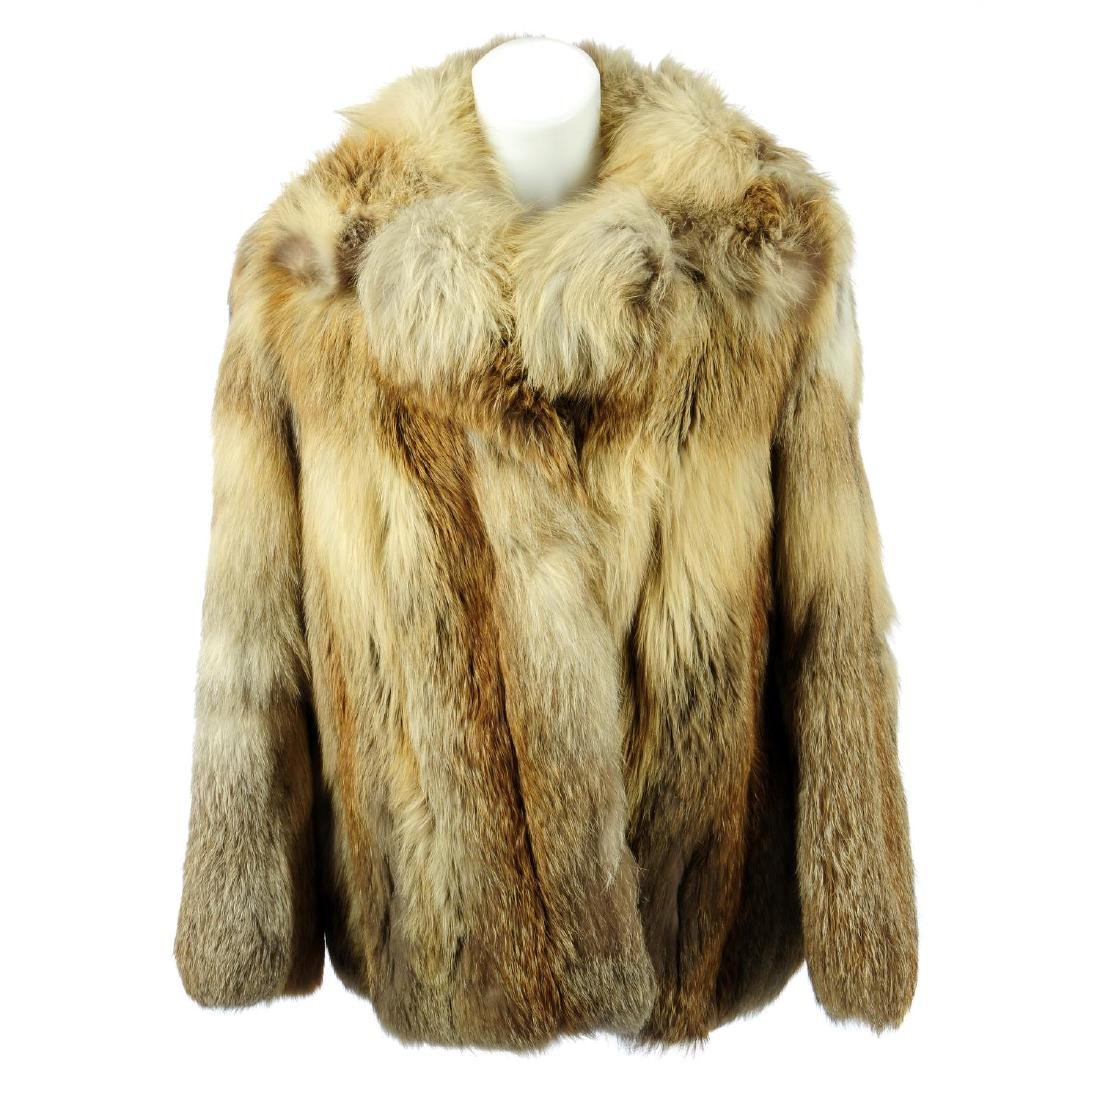 A red fox fur jacket. Designed with a notched lapel